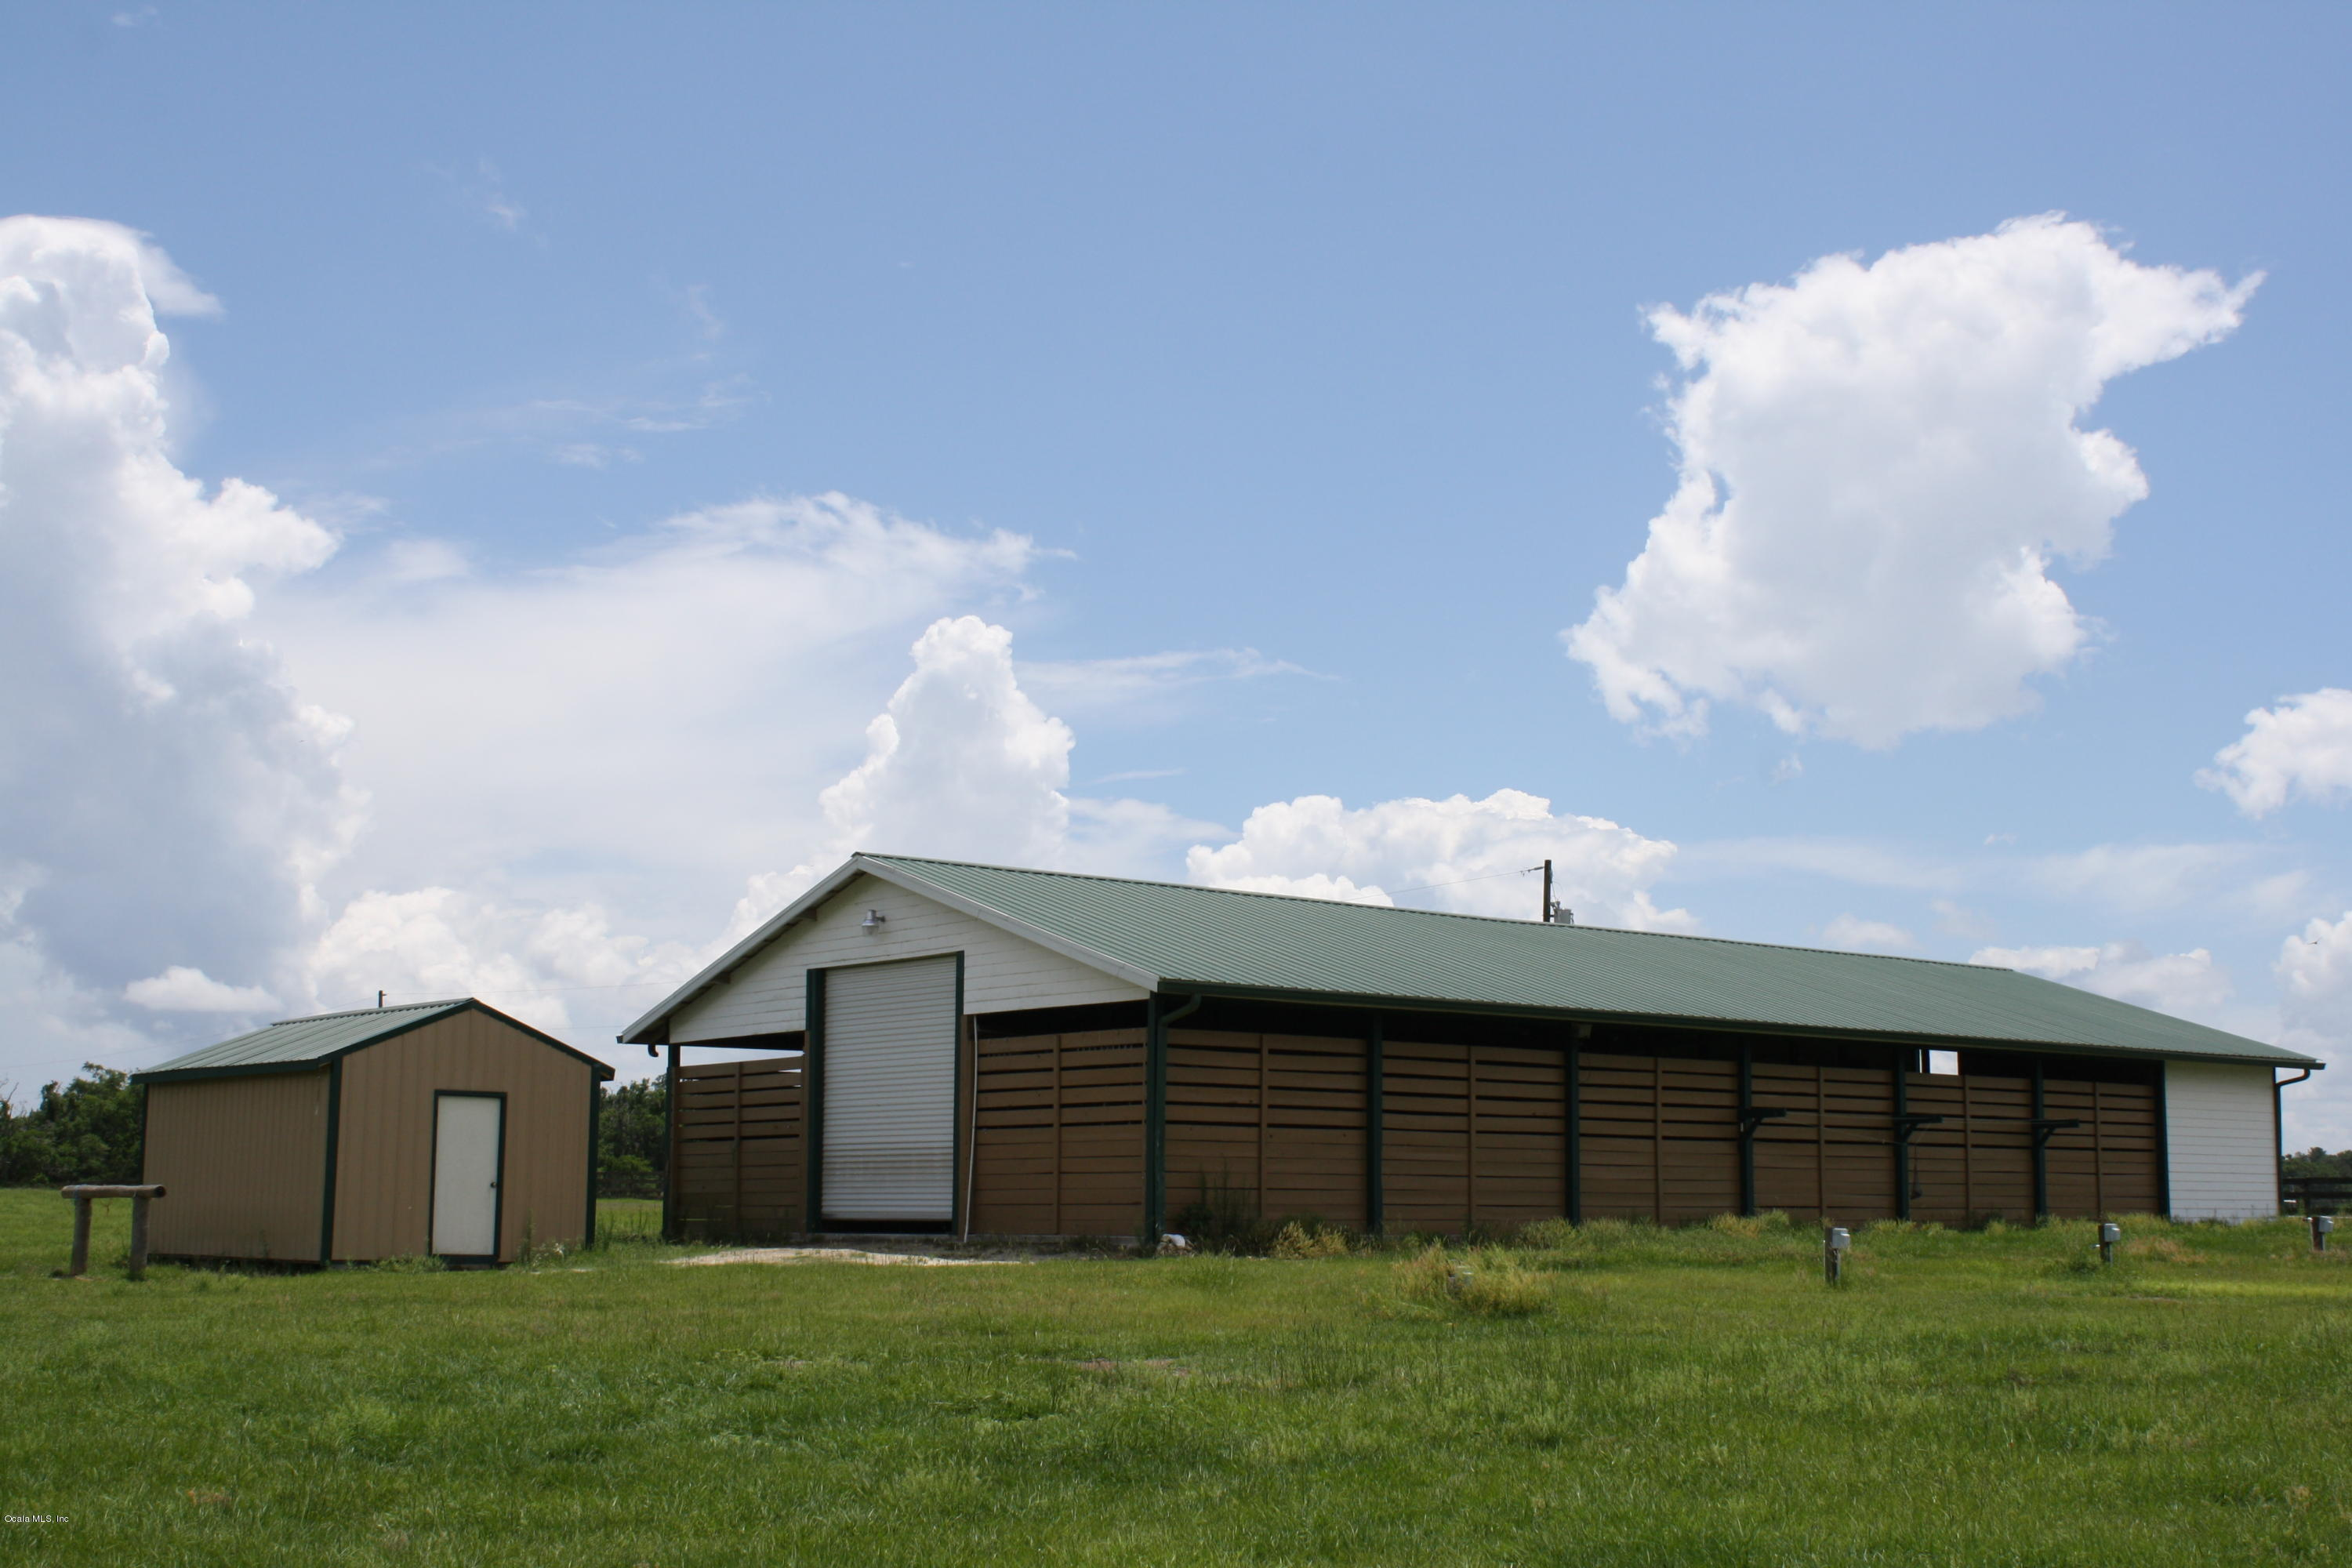 12 stall barn with feed and tack building